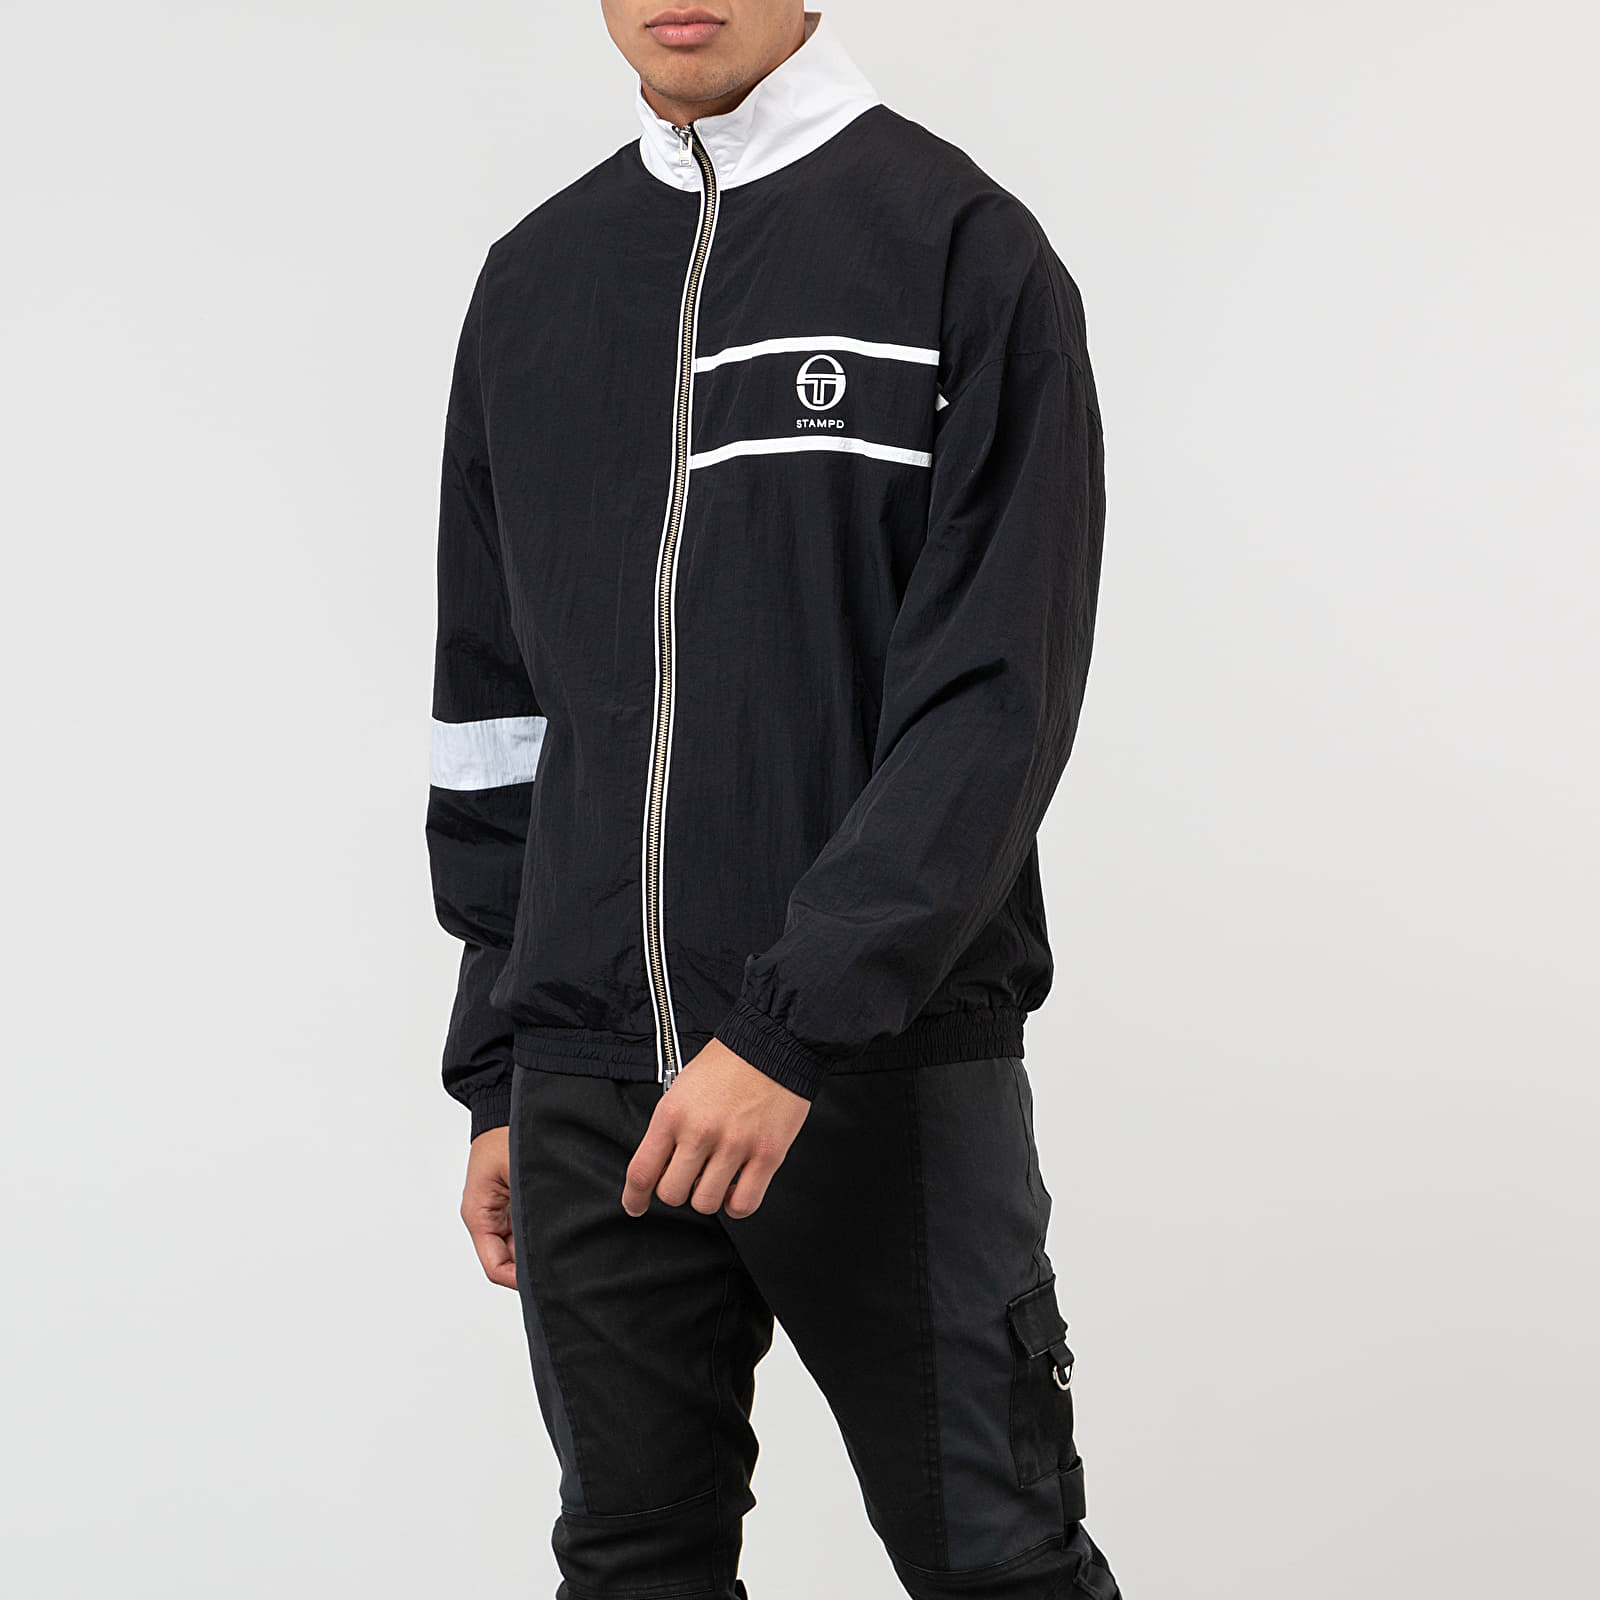 STAMPD x Sergio Tacchini Grille Track Jacket